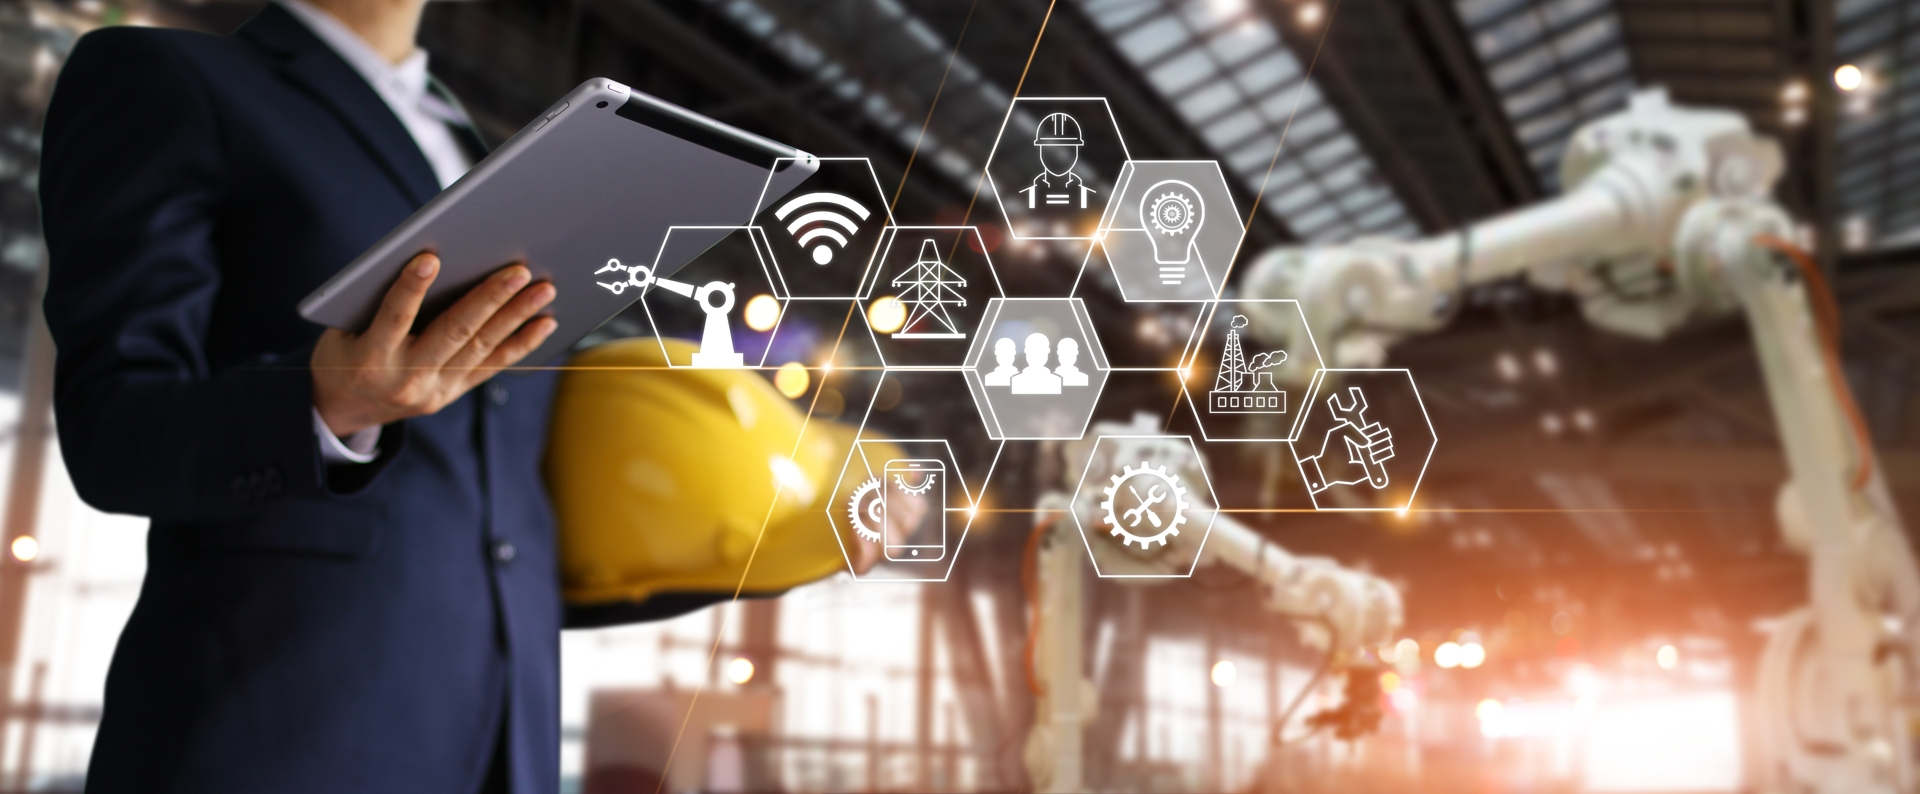 Industry Partners Promote Industry 4.0 Skills